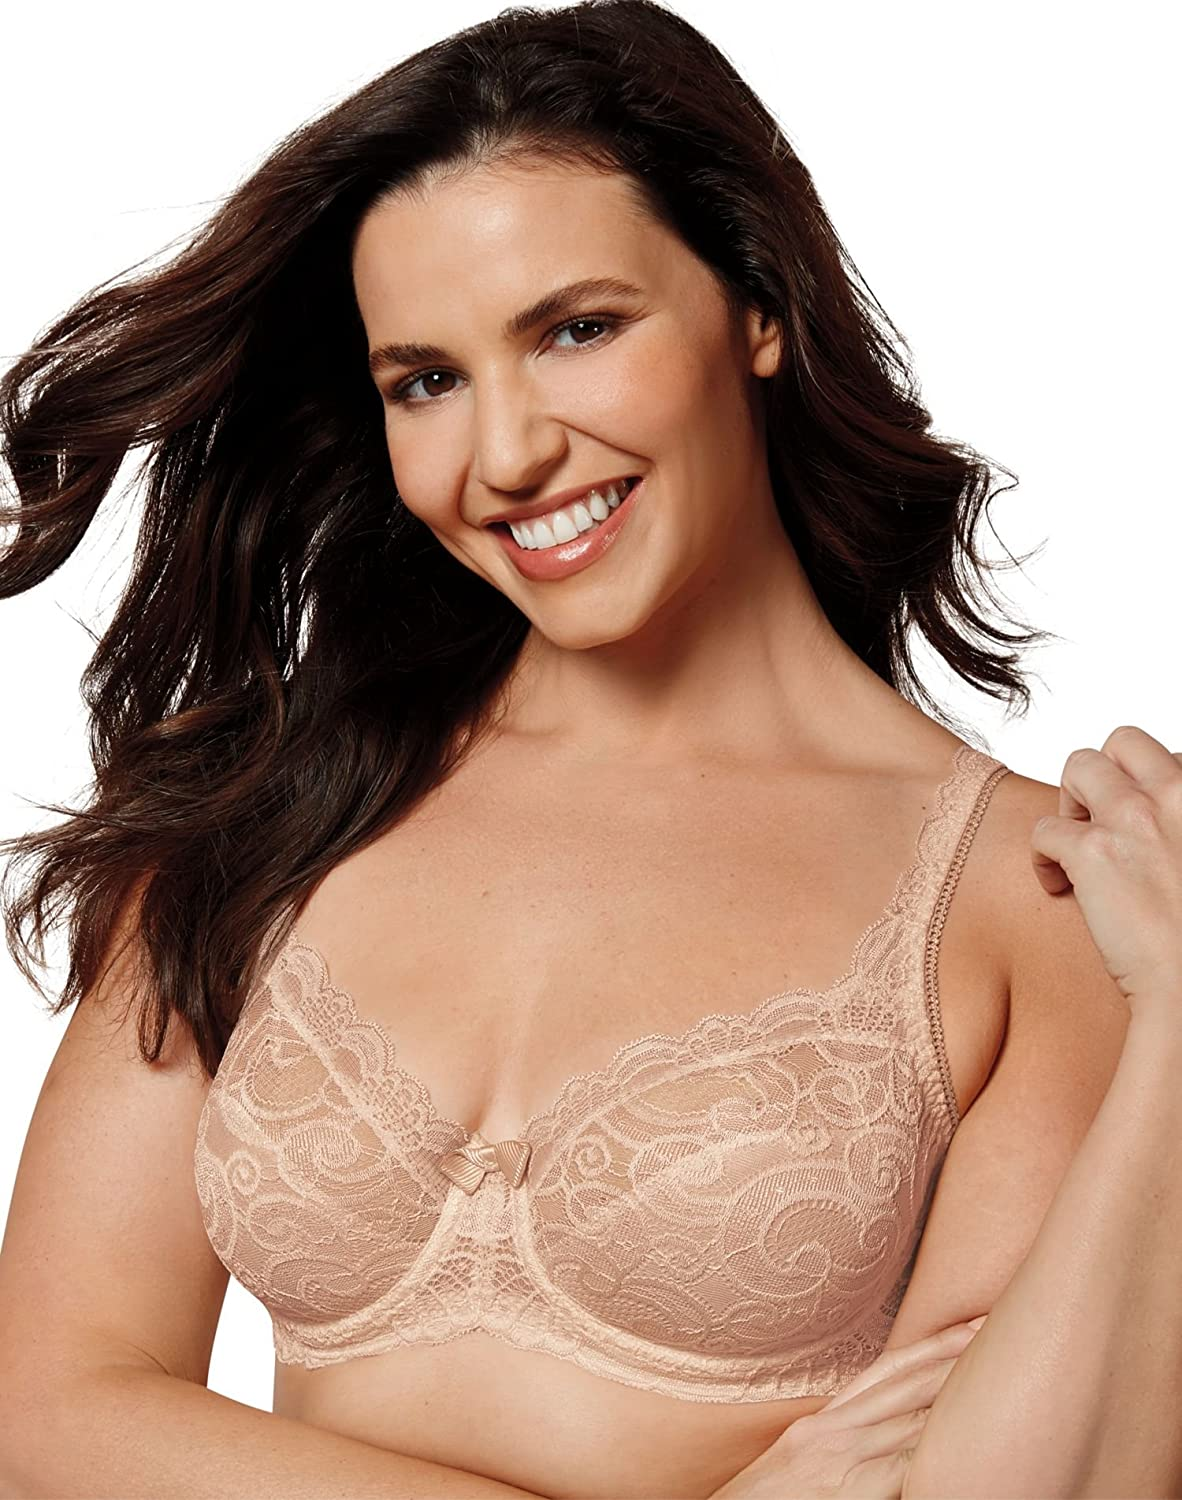 Playtex Women's Love My Curves Beautiful Lace and Lift Underwire Full Coverage Bra #4825